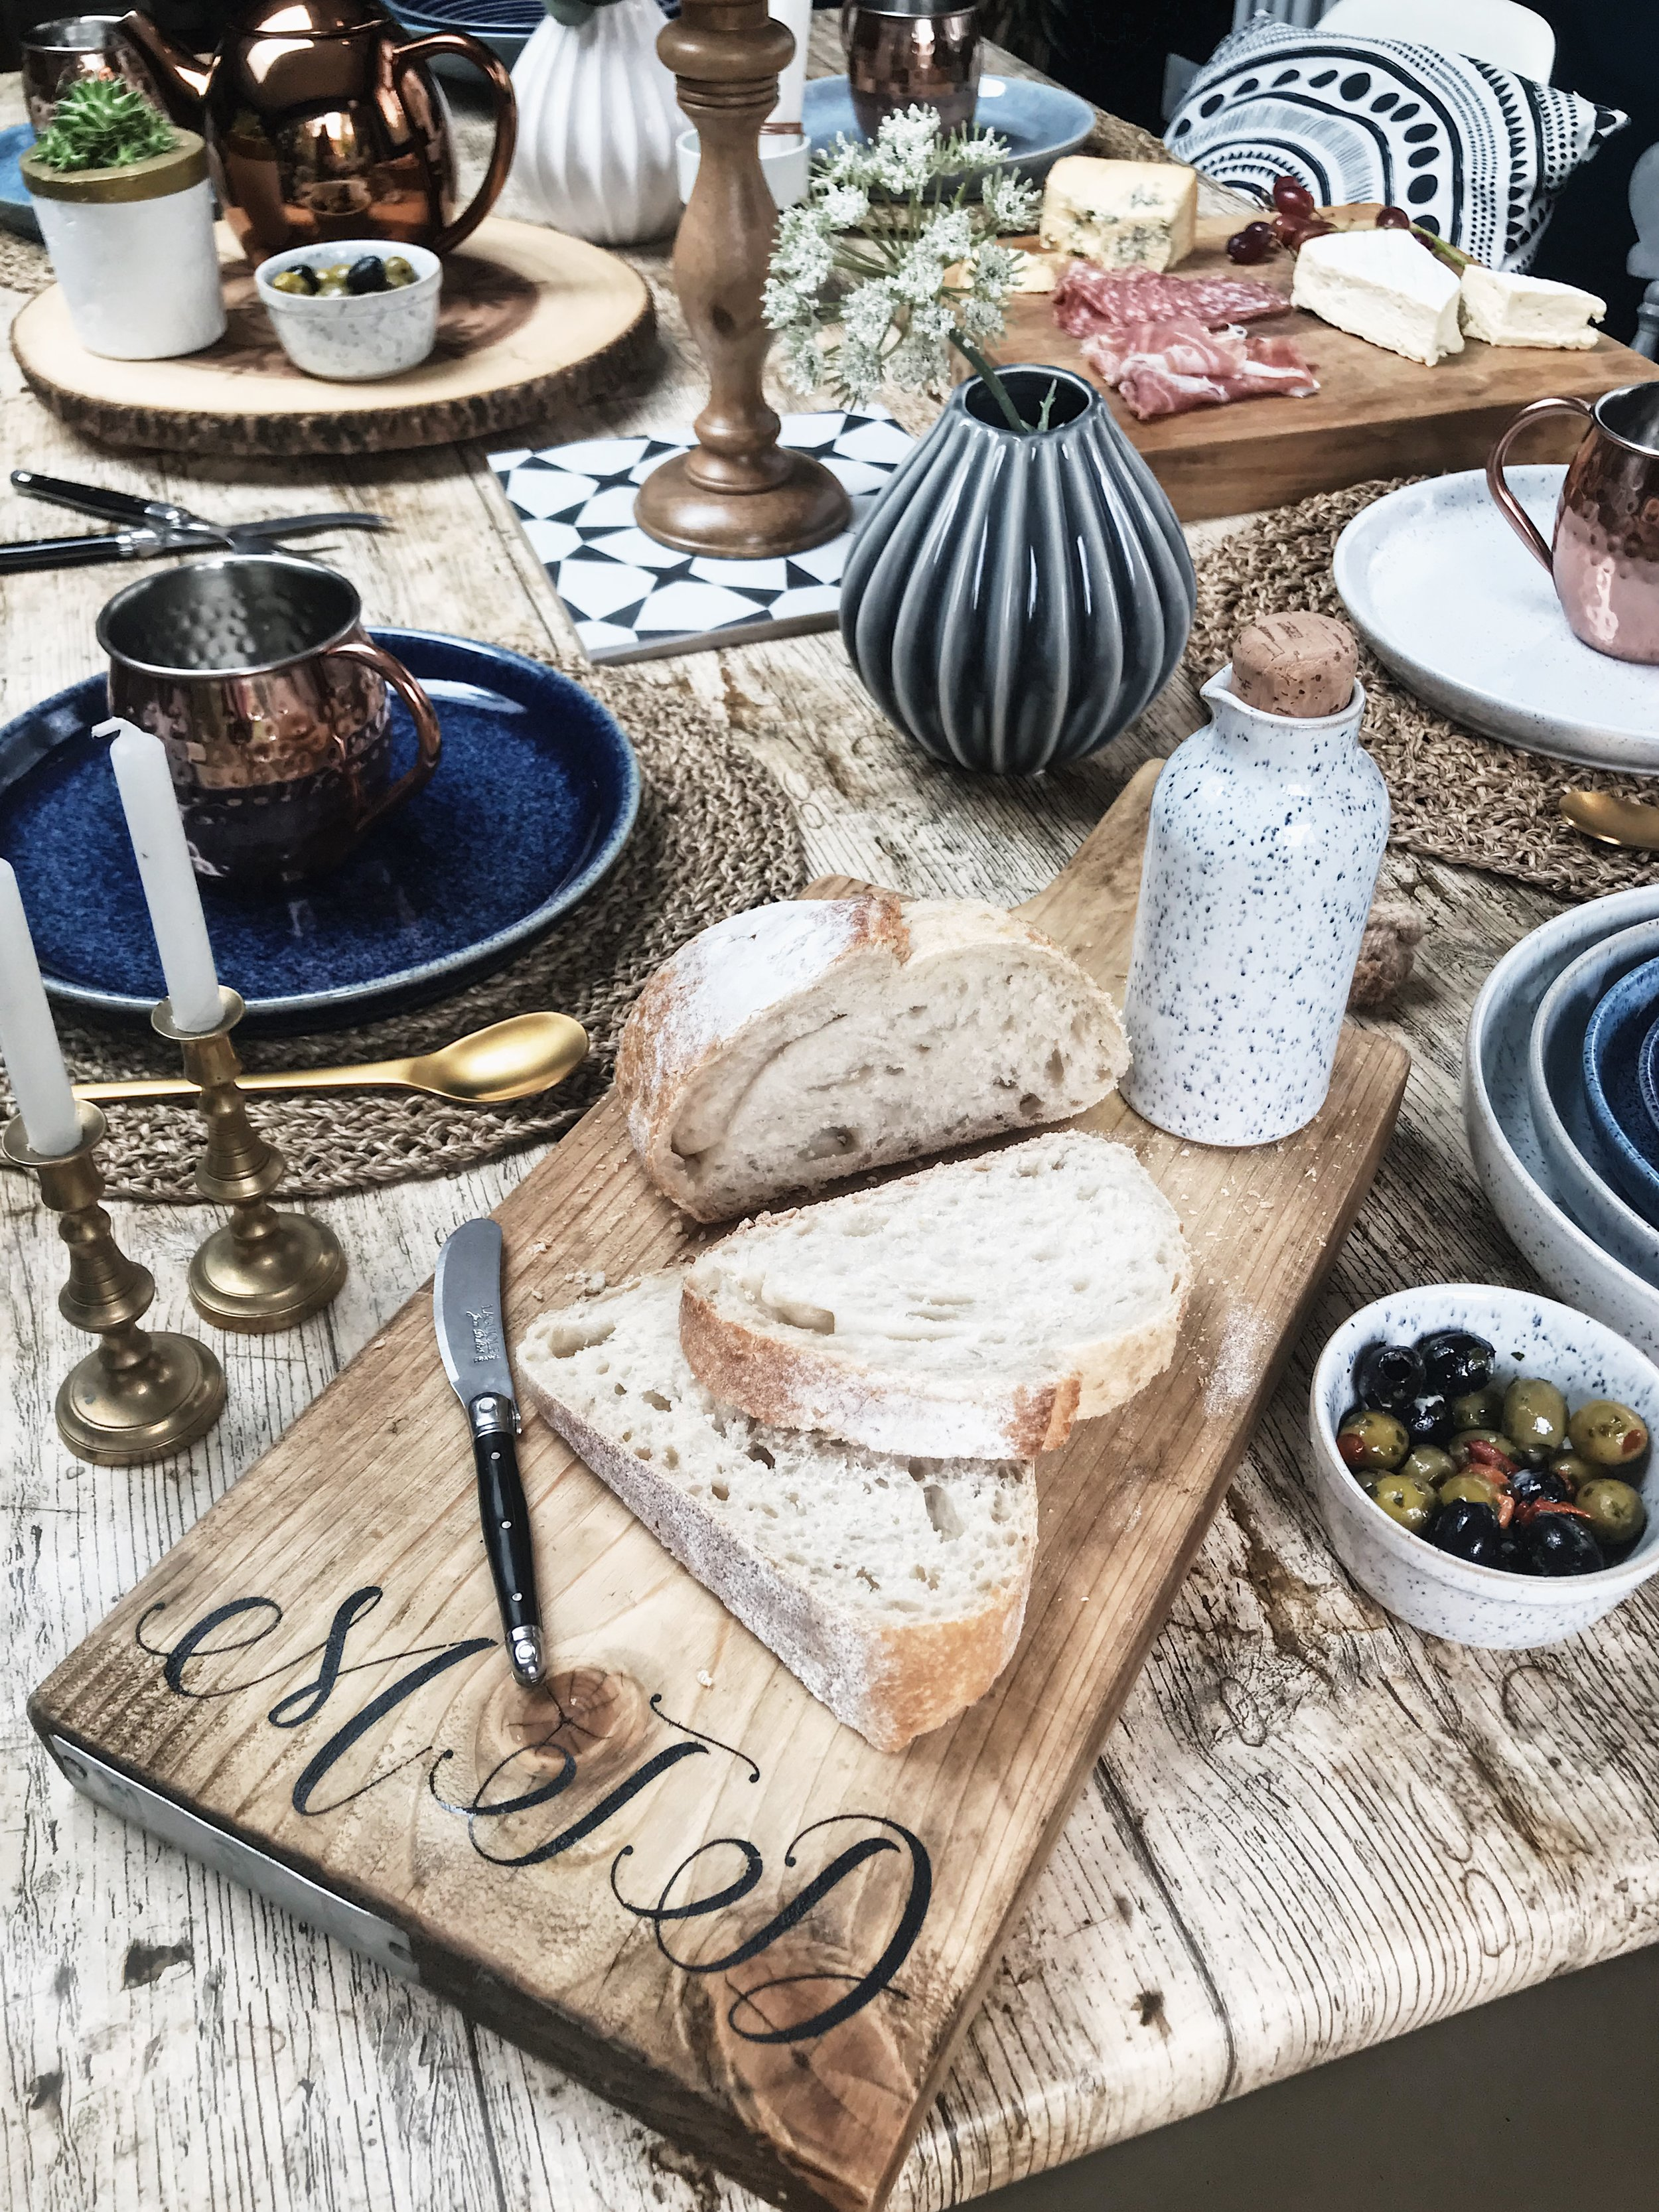 Serving boards are the perfect table accessory!